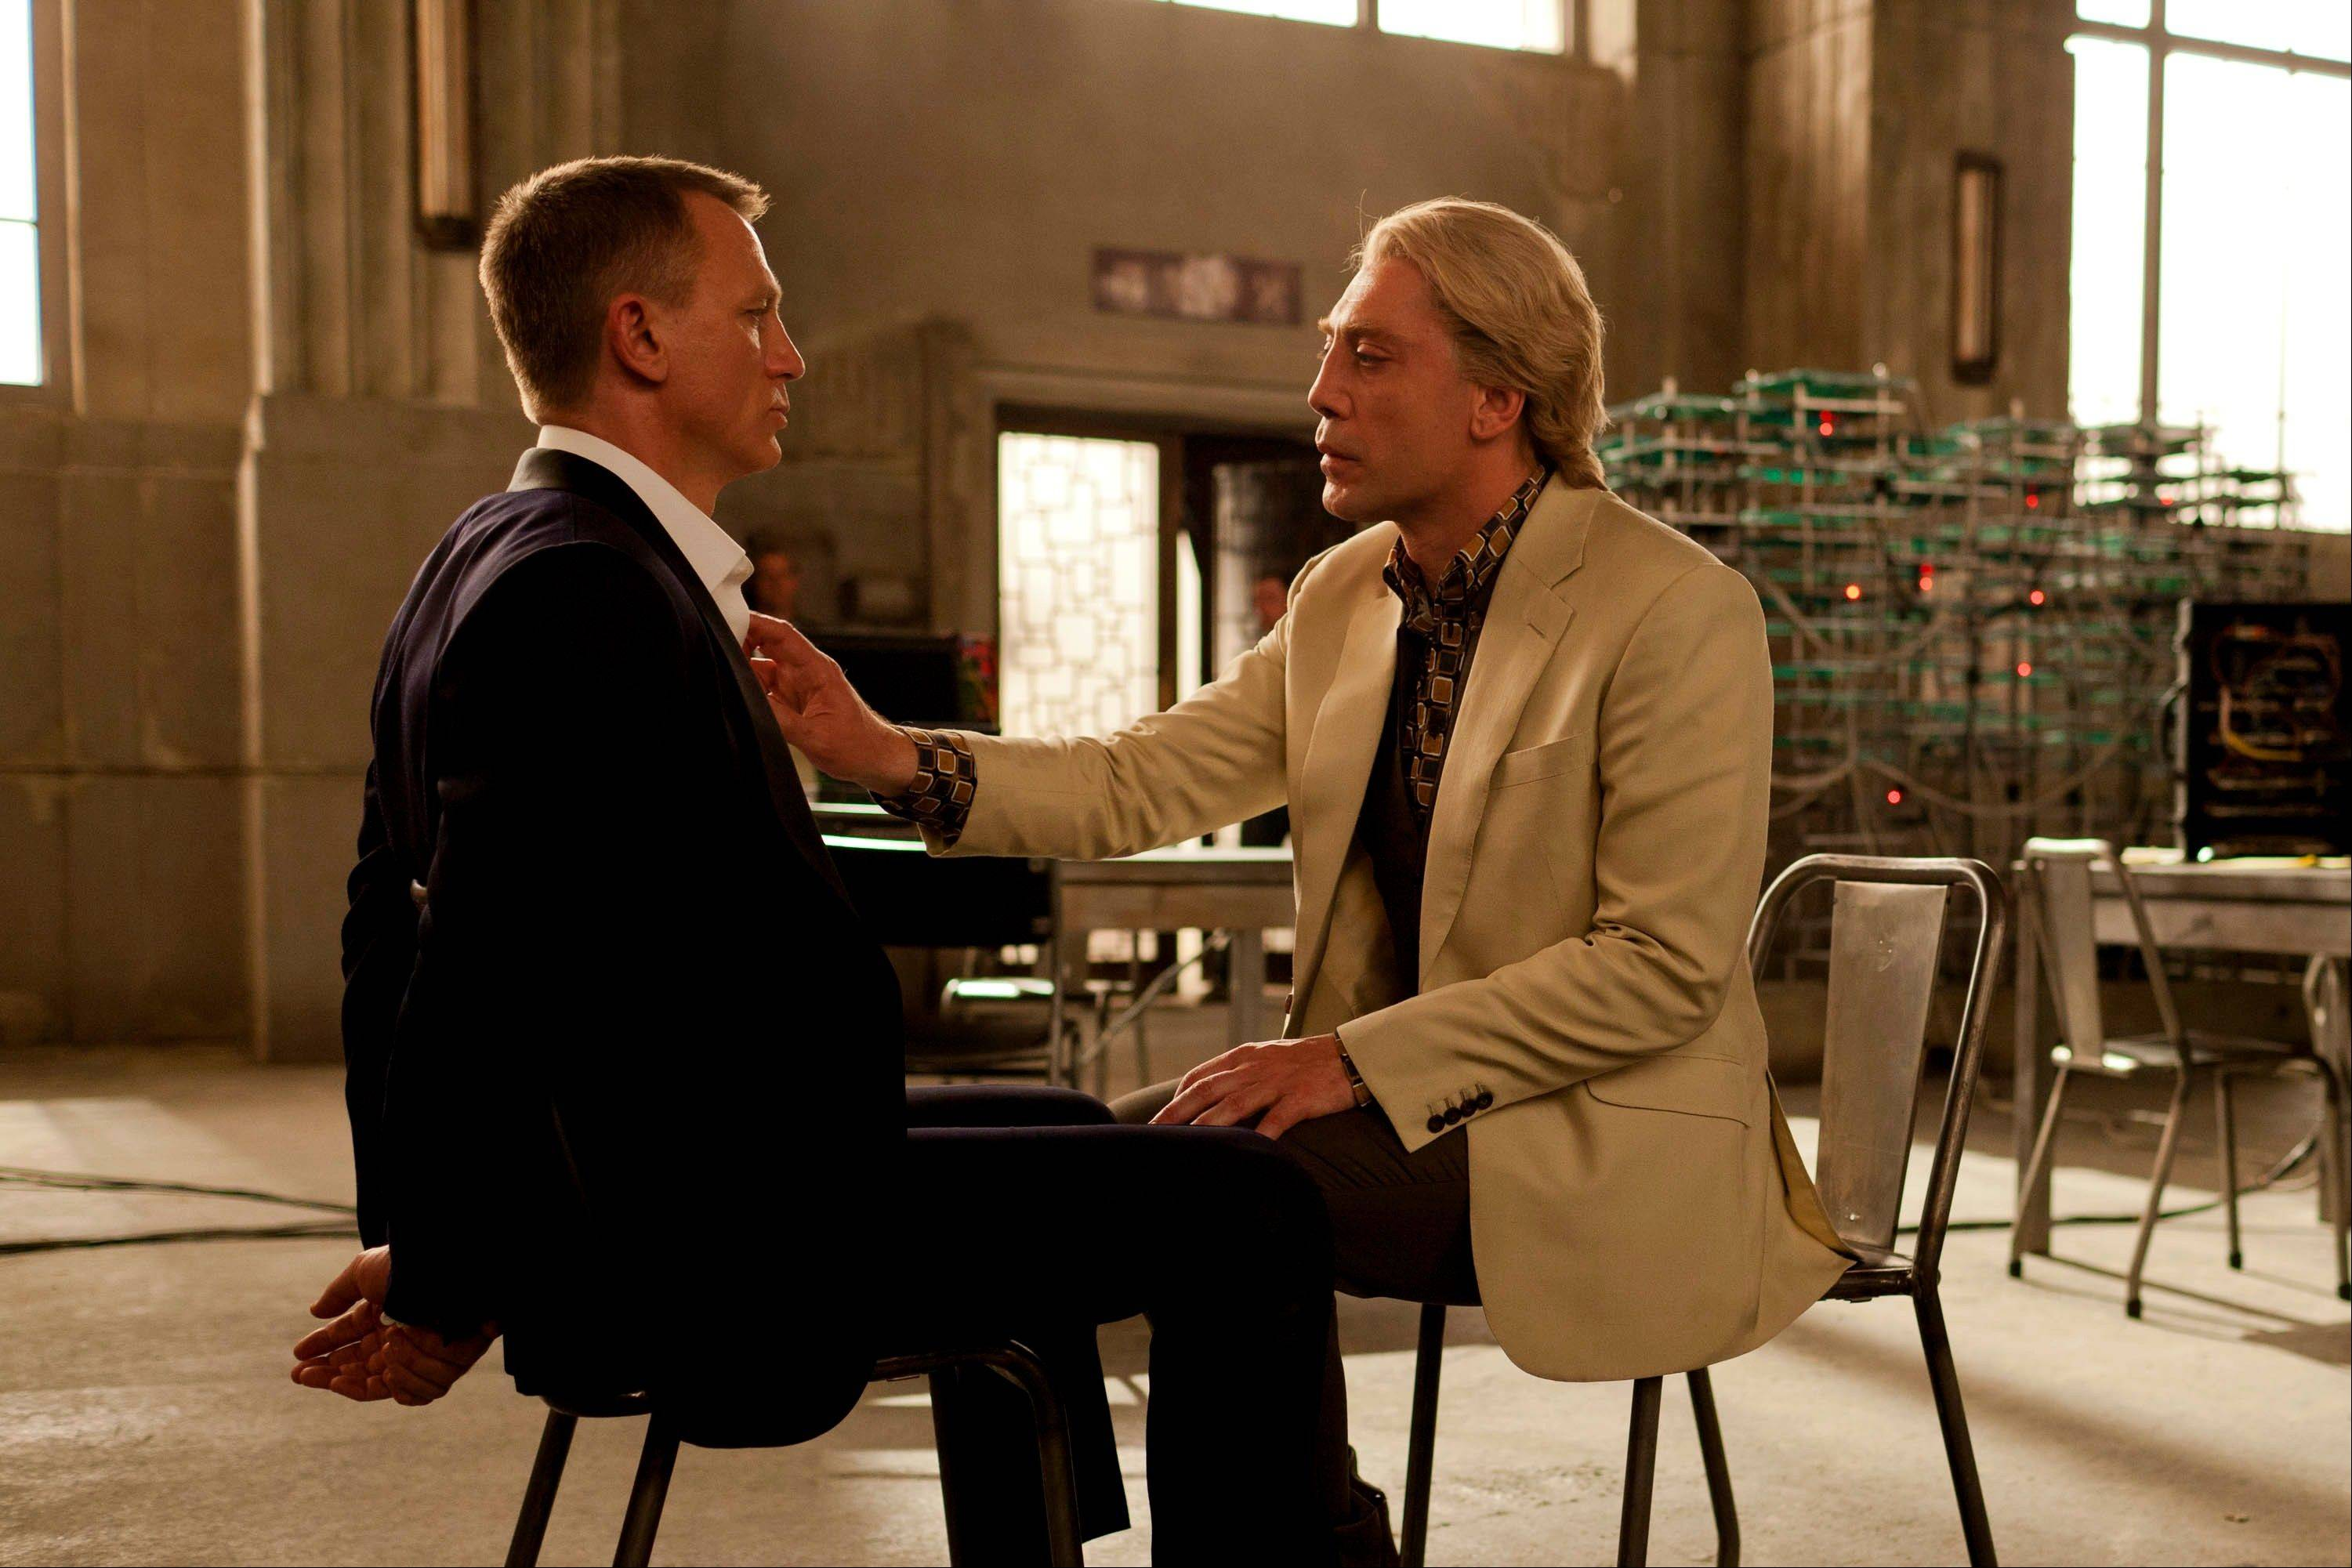 "This film image released by Sony Pictures shows Daniel Craig, left, and Javier Bardem in a scene from the film ""Skyfall."" Bardem portrays, Raoul Silva, one of the finest arch-enemies in the 50-year history of Bond films."